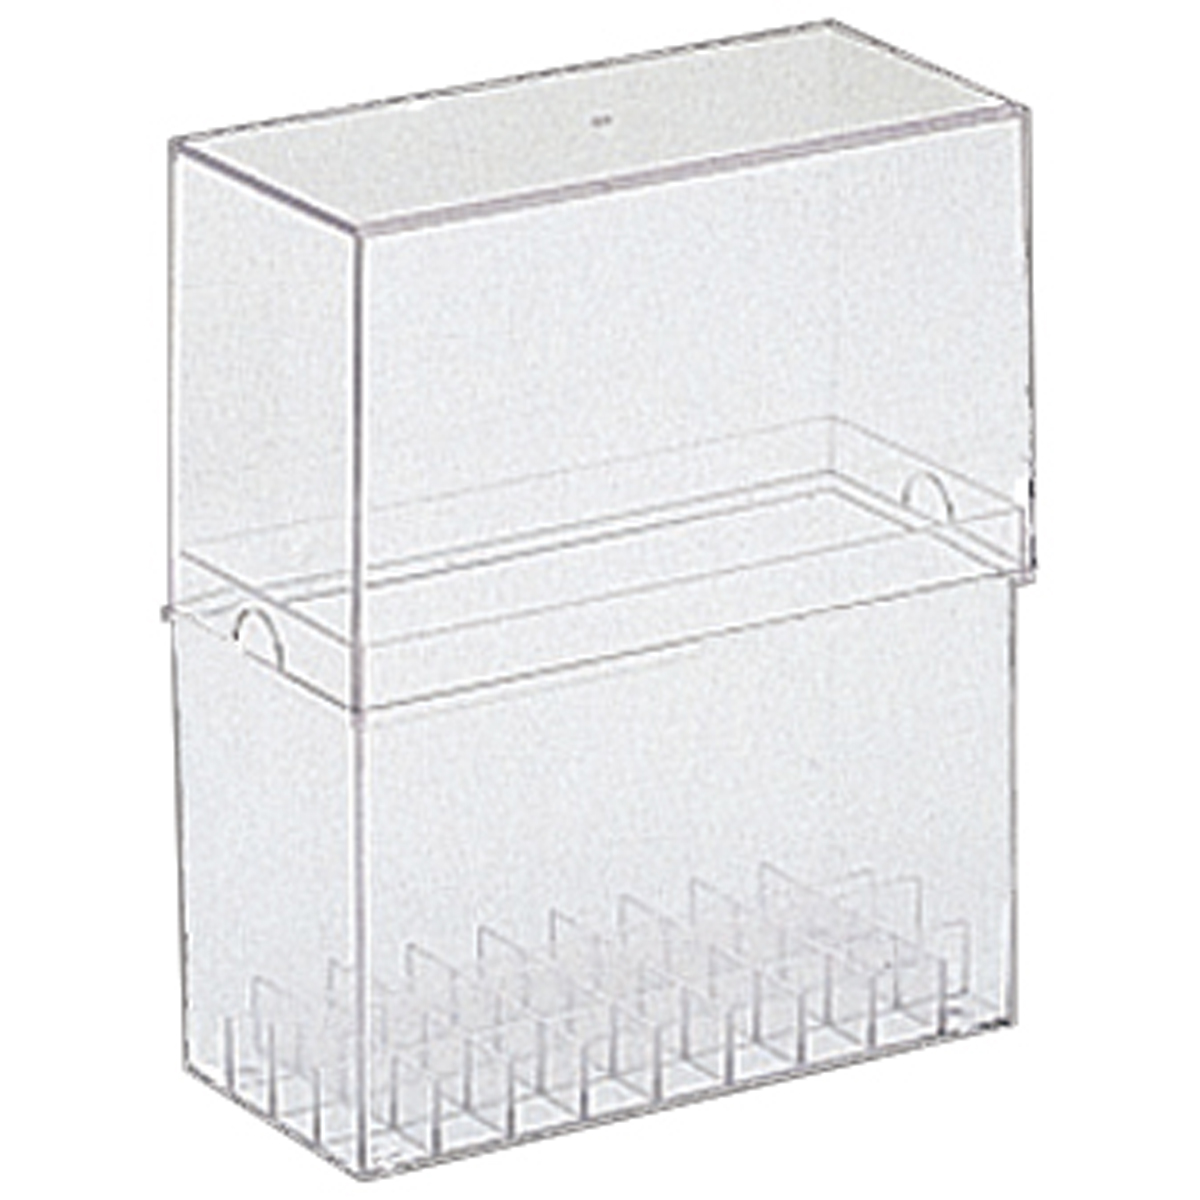 Copic Sketch Marker Case - Empty-Holds 36